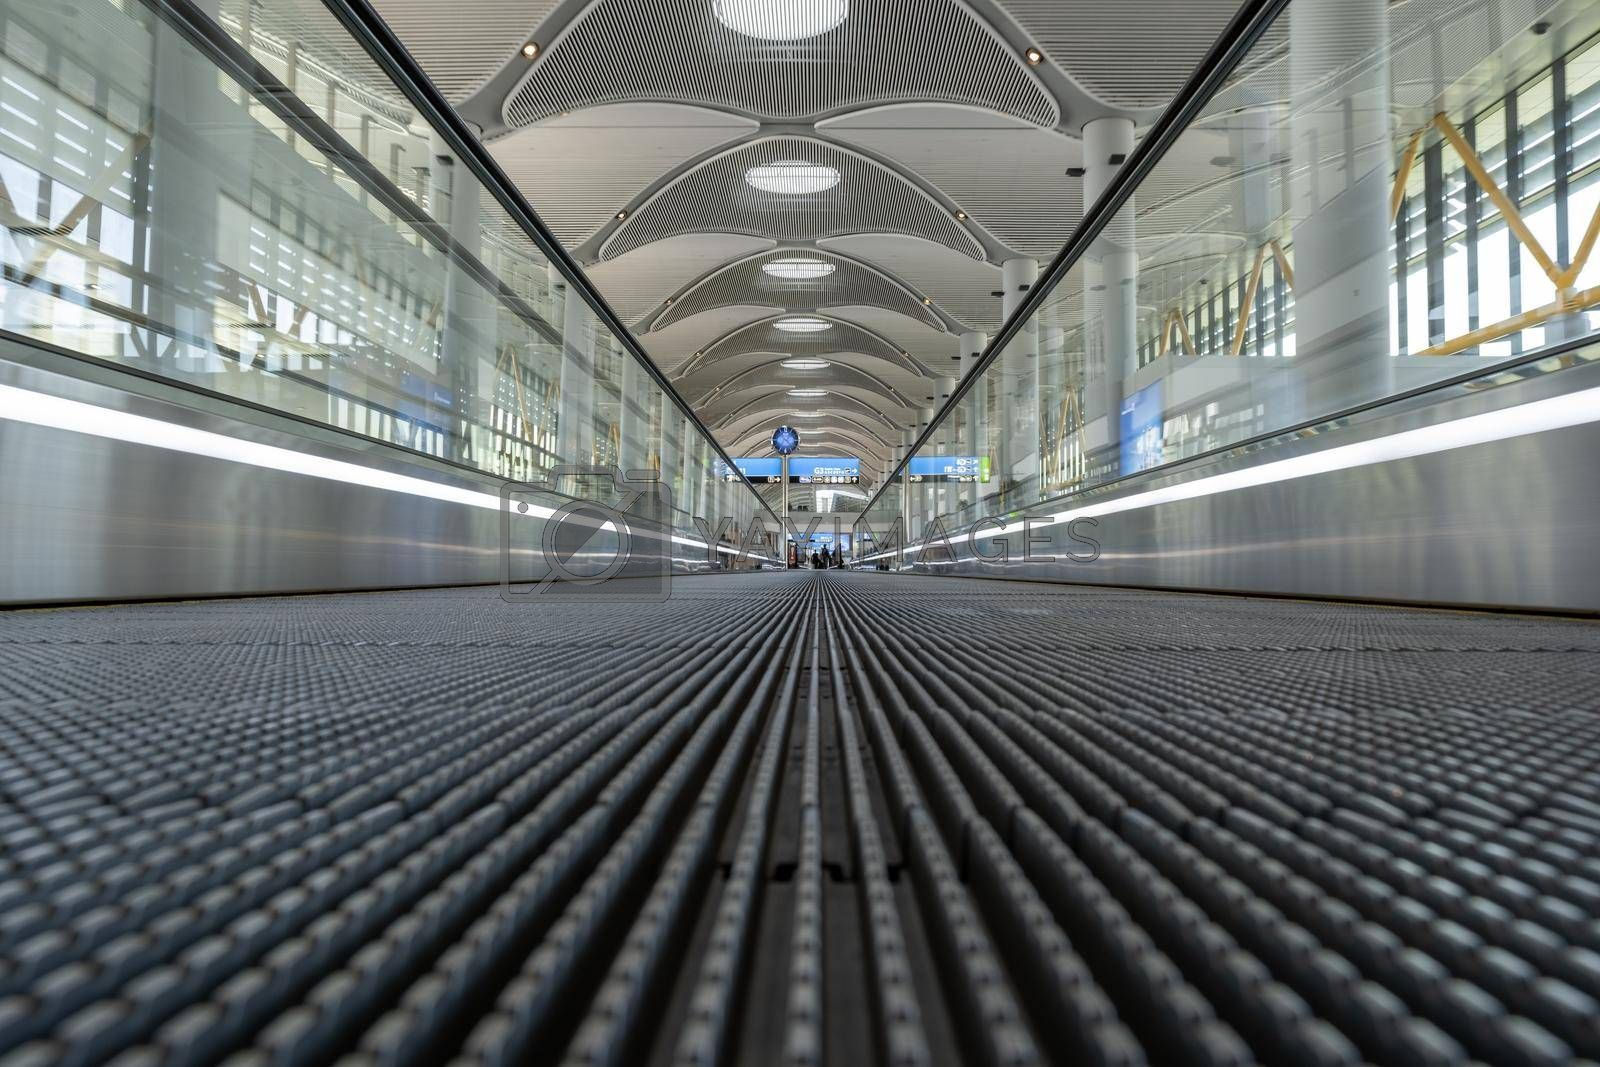 low angle of people mover in an airport with some unrecognizable people